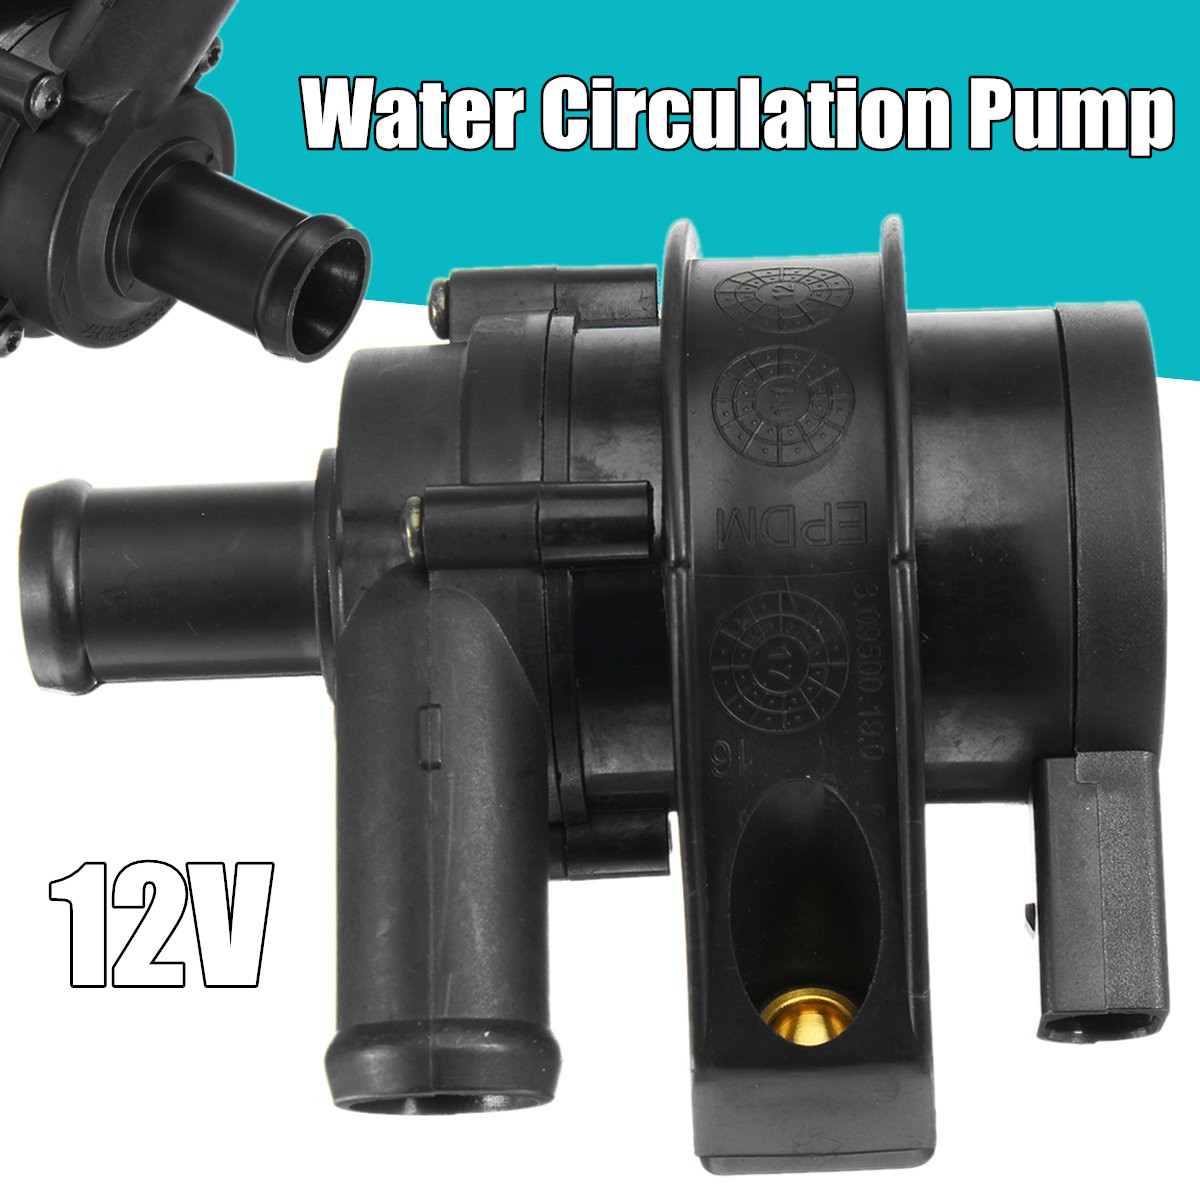 600L/H High Quality DC 12V Hot Water Circulation Pump Brushless Motor Water Pump New Arrival